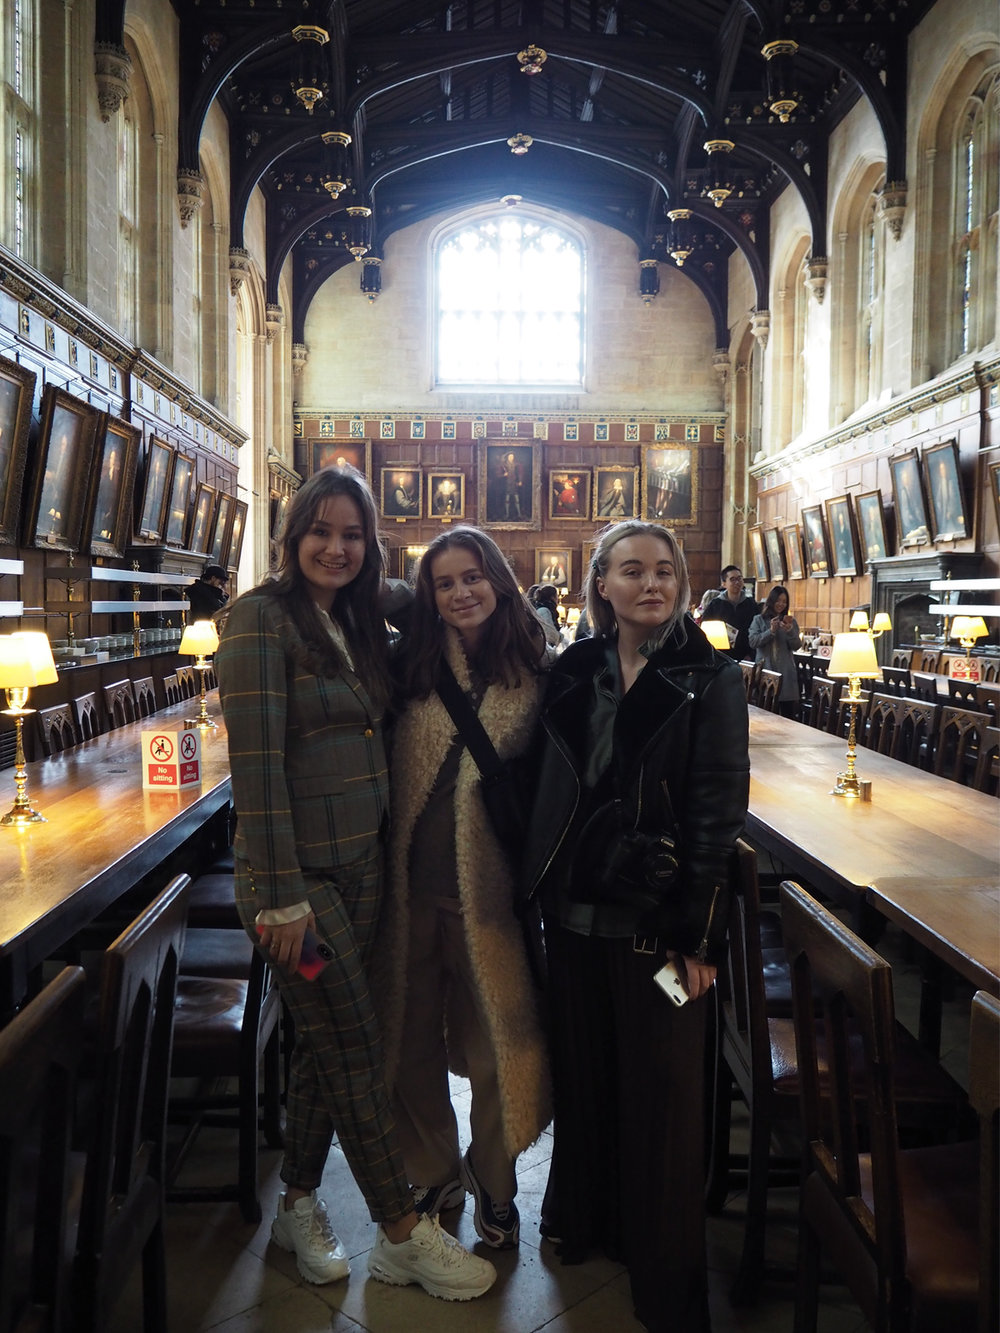 Milana, Emilie & Emilia. Can you imagine the students actually dining here in real life?